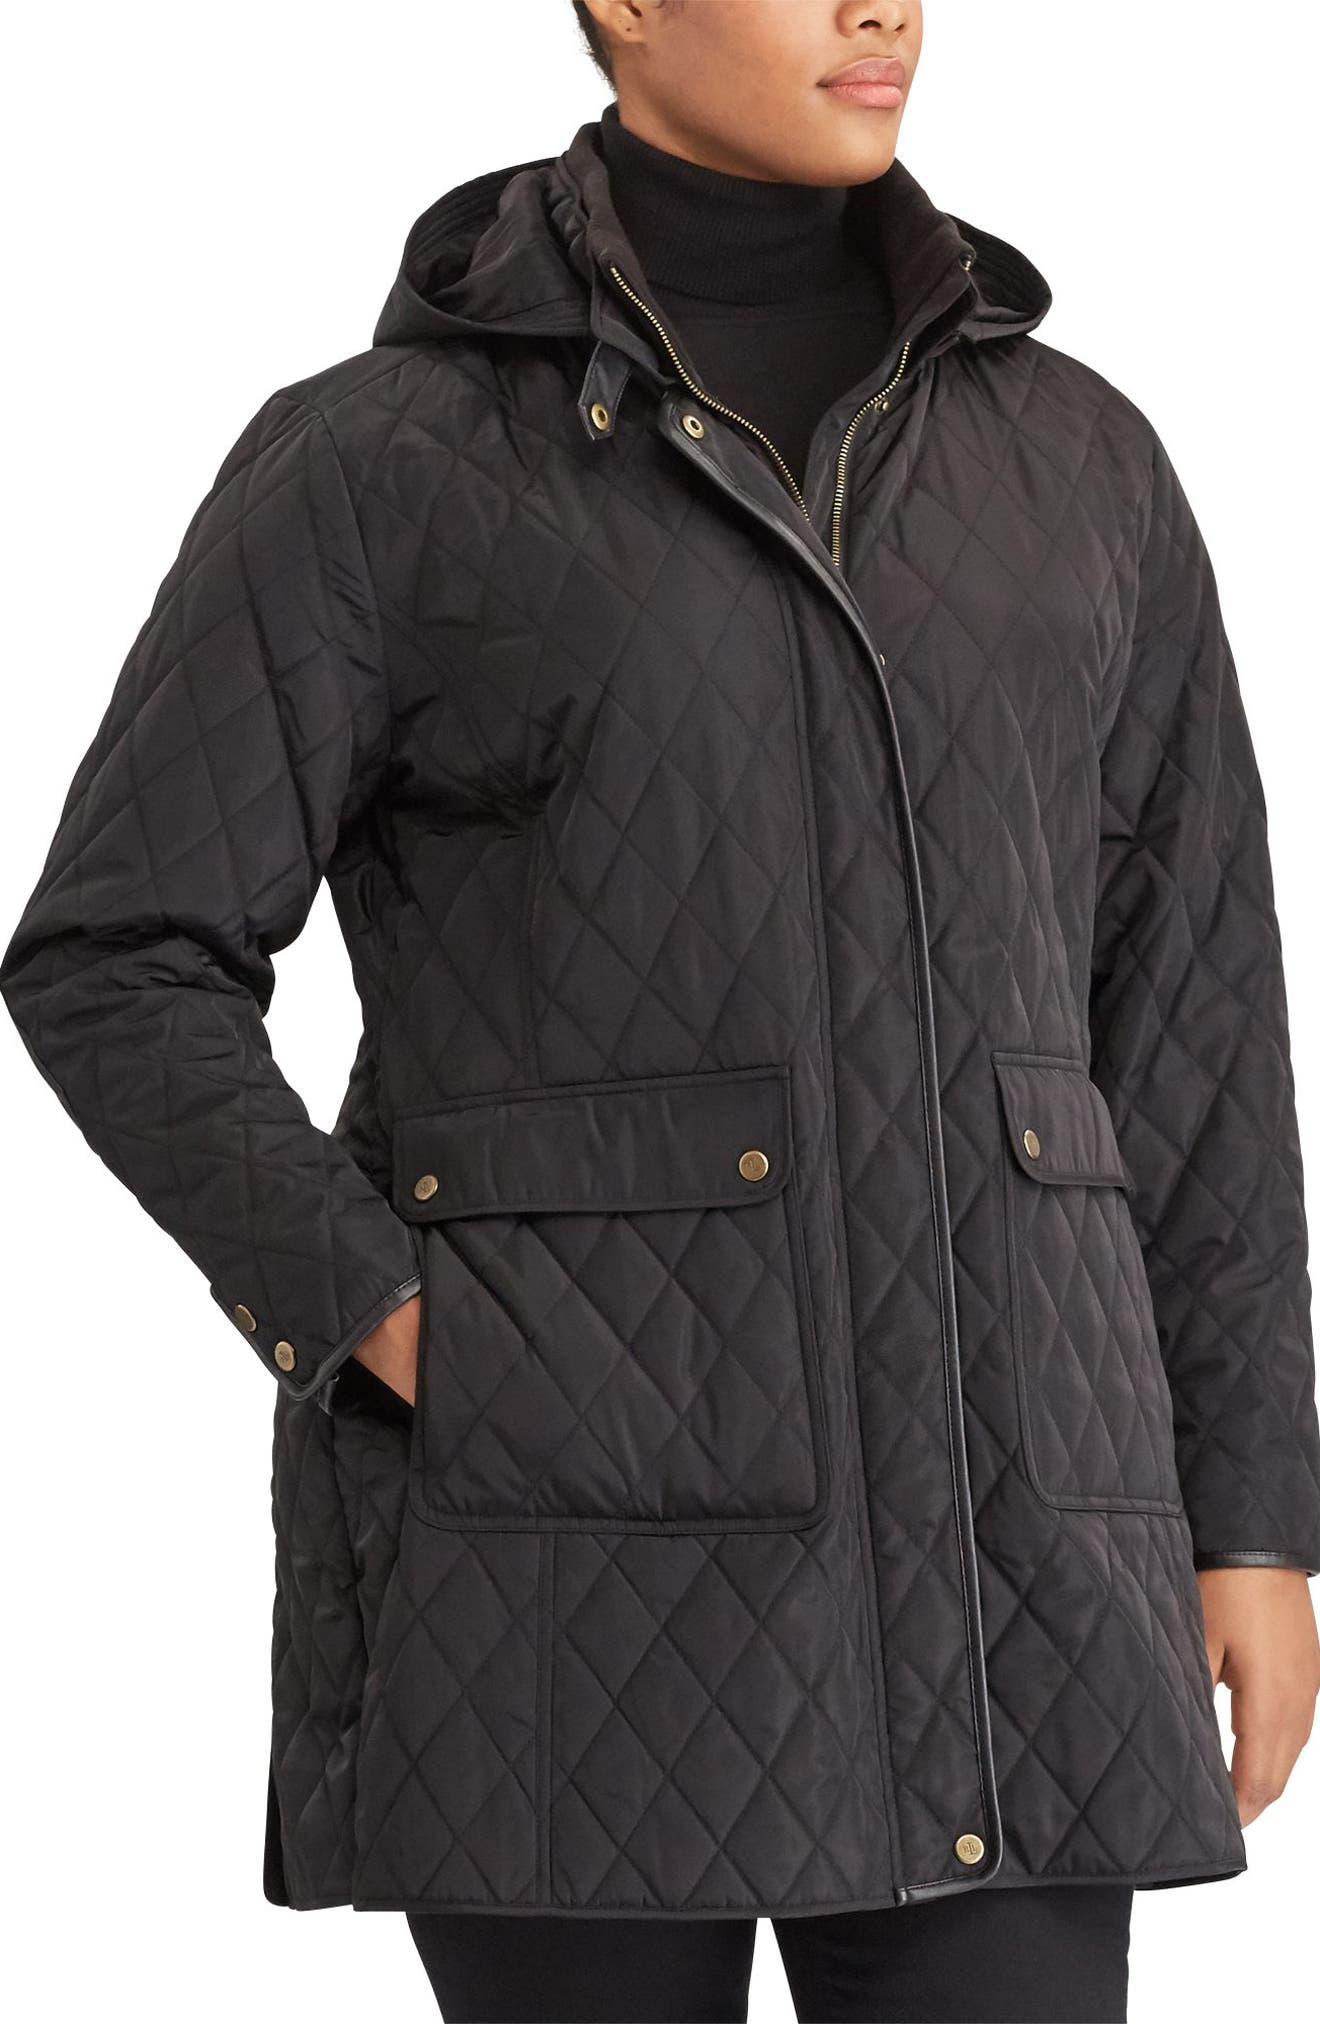 Diamond Quilted Jacket with Faux Leather Trim,                         Main,                         color, 001